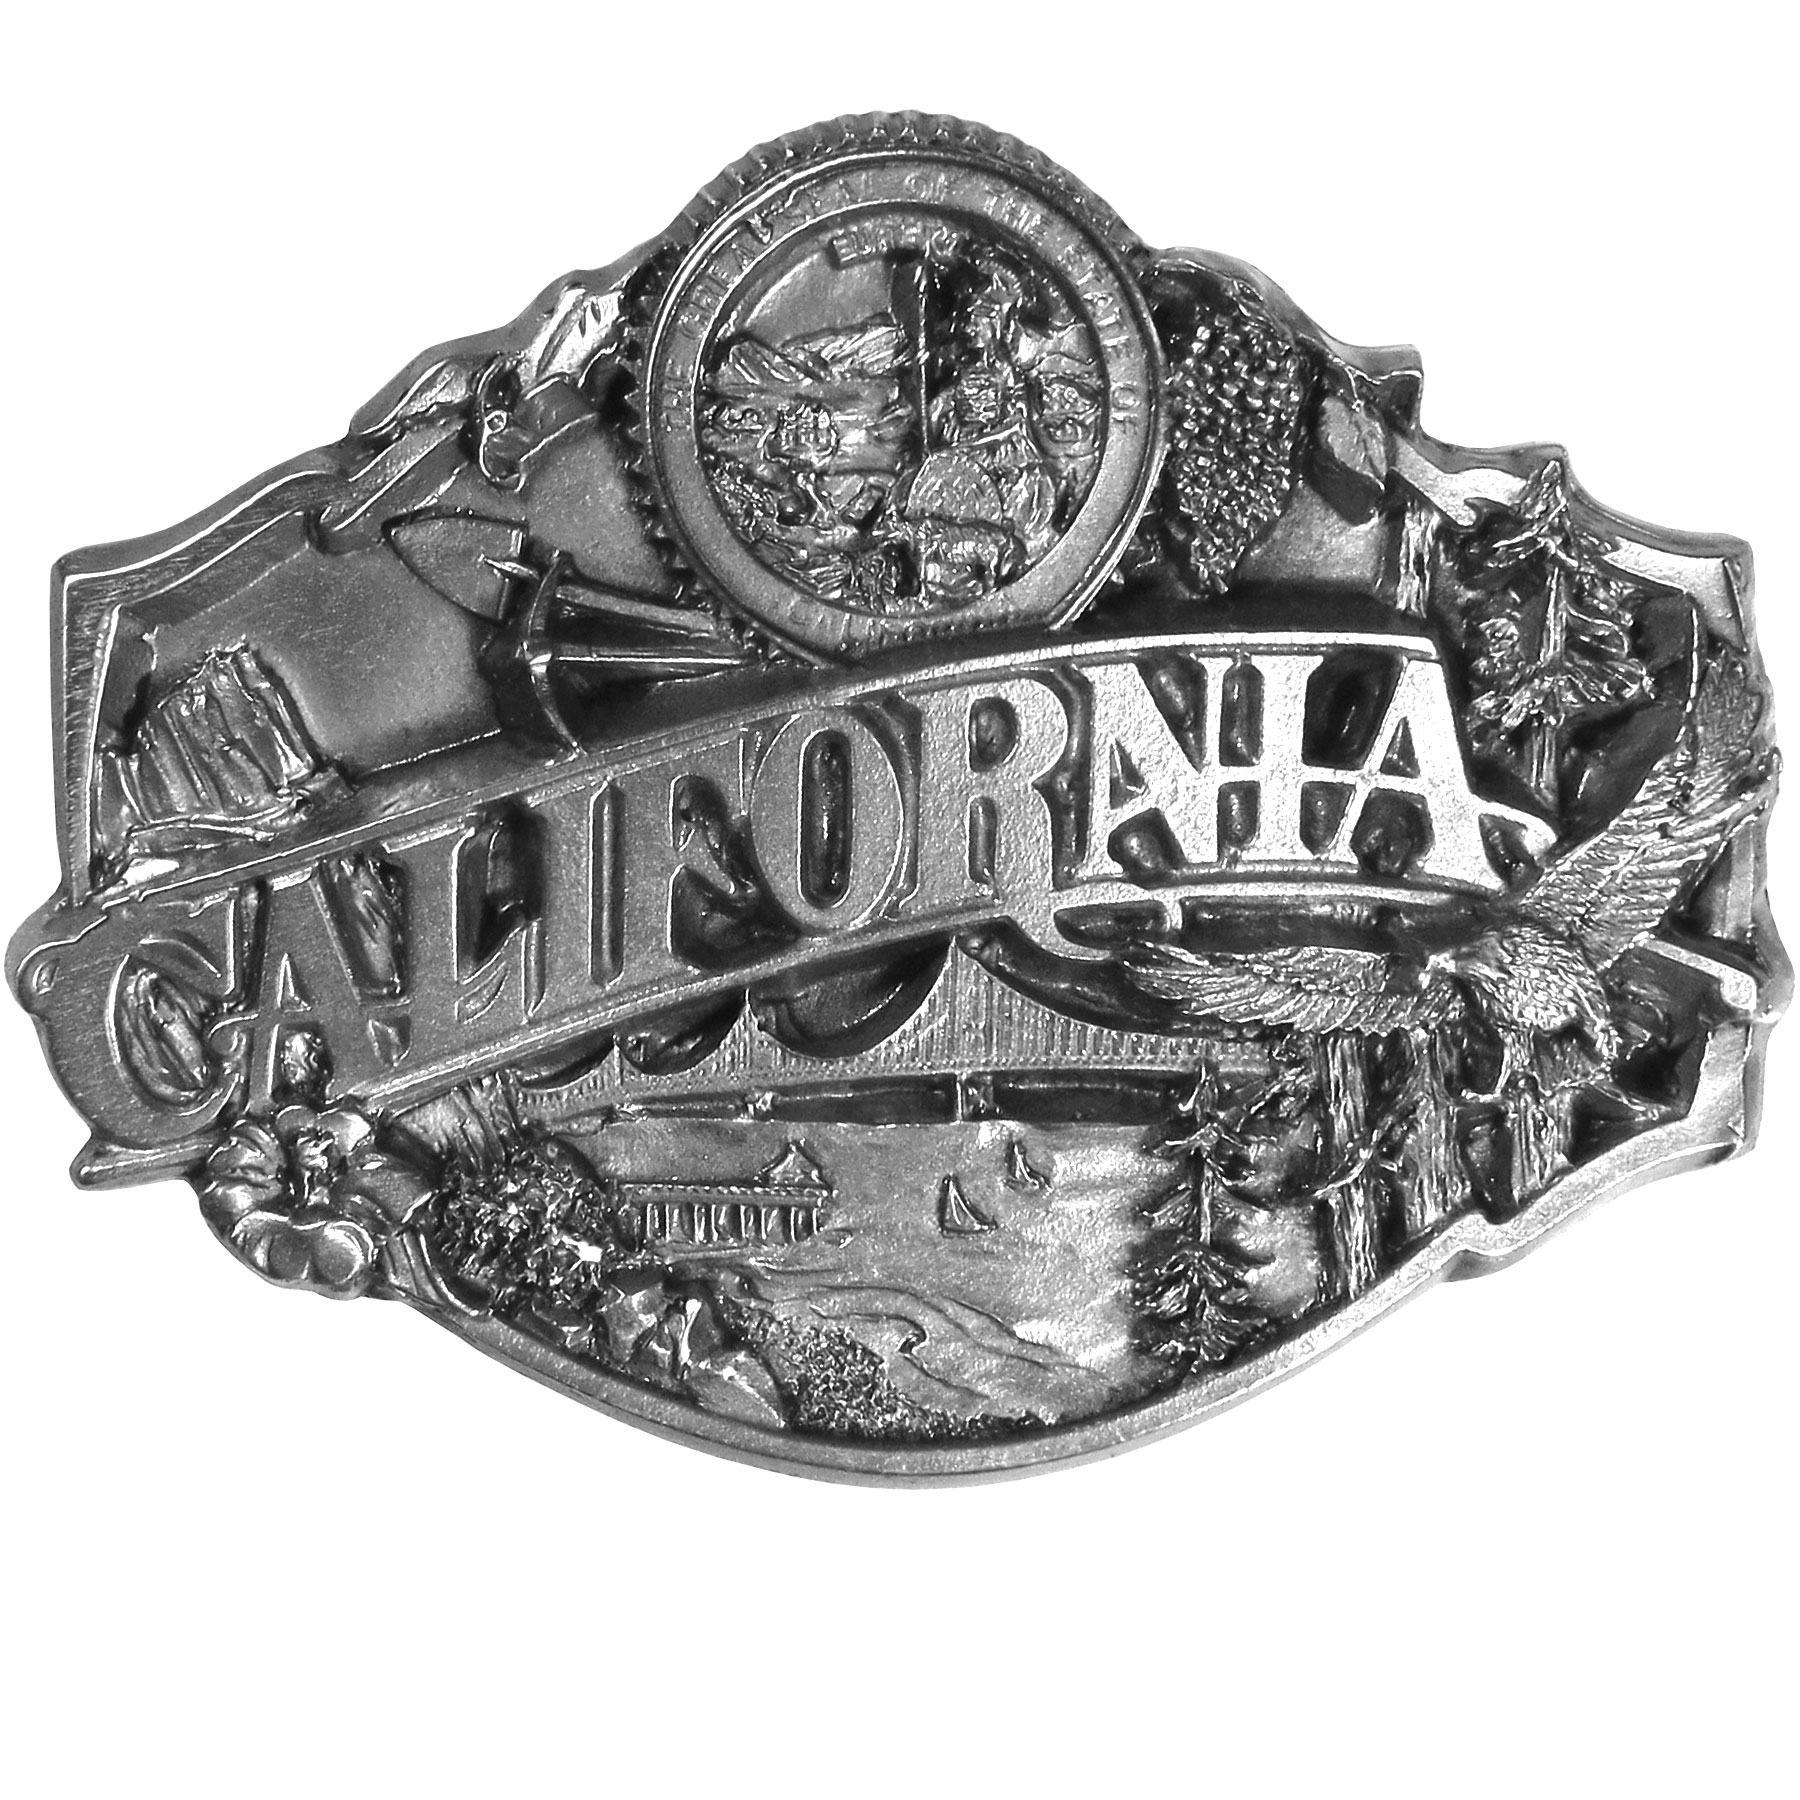 "California Antiqued Belt Buckle - ""This belt buckle celebrates California!  """"California"""" is written in bold across the center with images of the Golden Gate Bridge, sailboats, the Santa Monica Pier, Redwoods, a California Poppy, a quail, mountains, mining equipment, the state seal and grapevines surrounding it.  On the back are the words, """"California became the 31st state on Sept 9th, 1850.  The state bird is the California Valley Quail.  The state flower is the Golden Poppy.  The state tree is the California Redwood."""""""